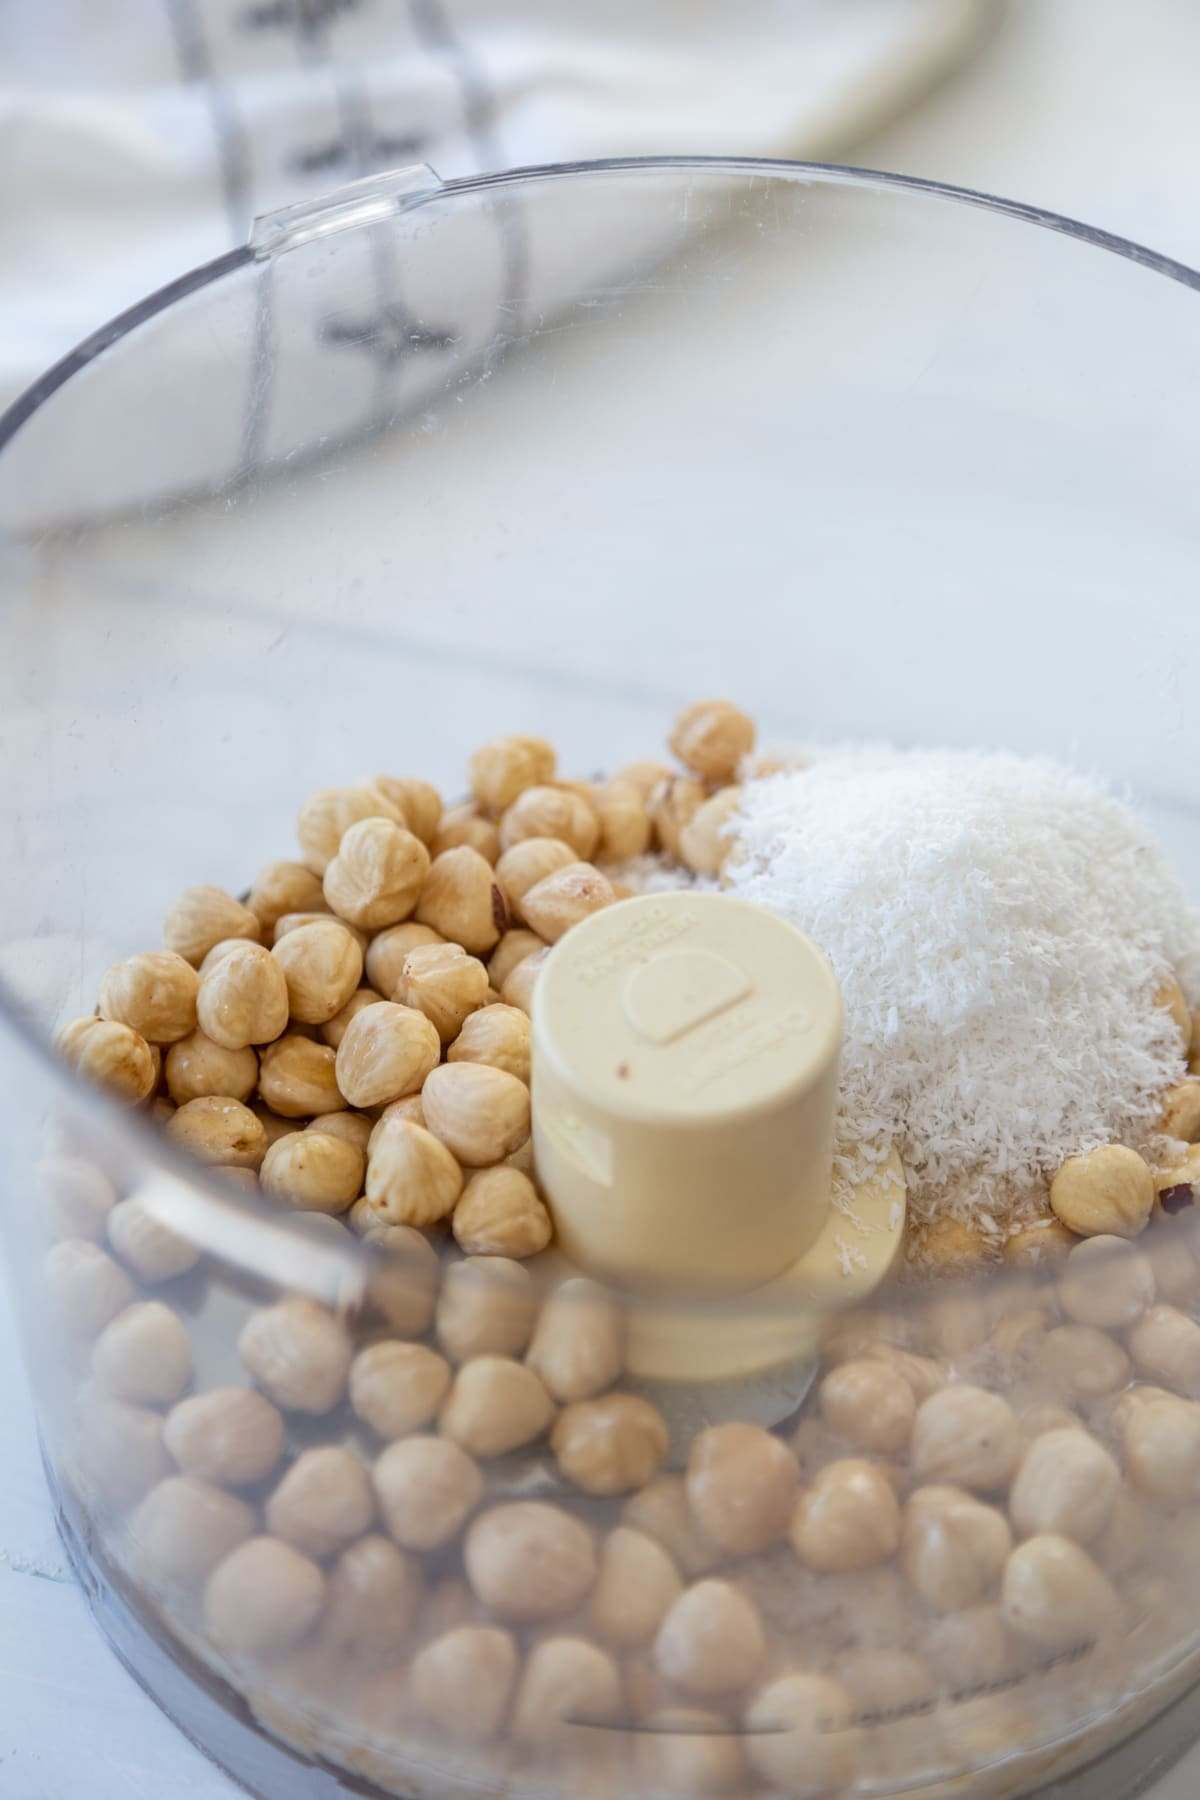 A food processor with hazelnuts and dried coconut.